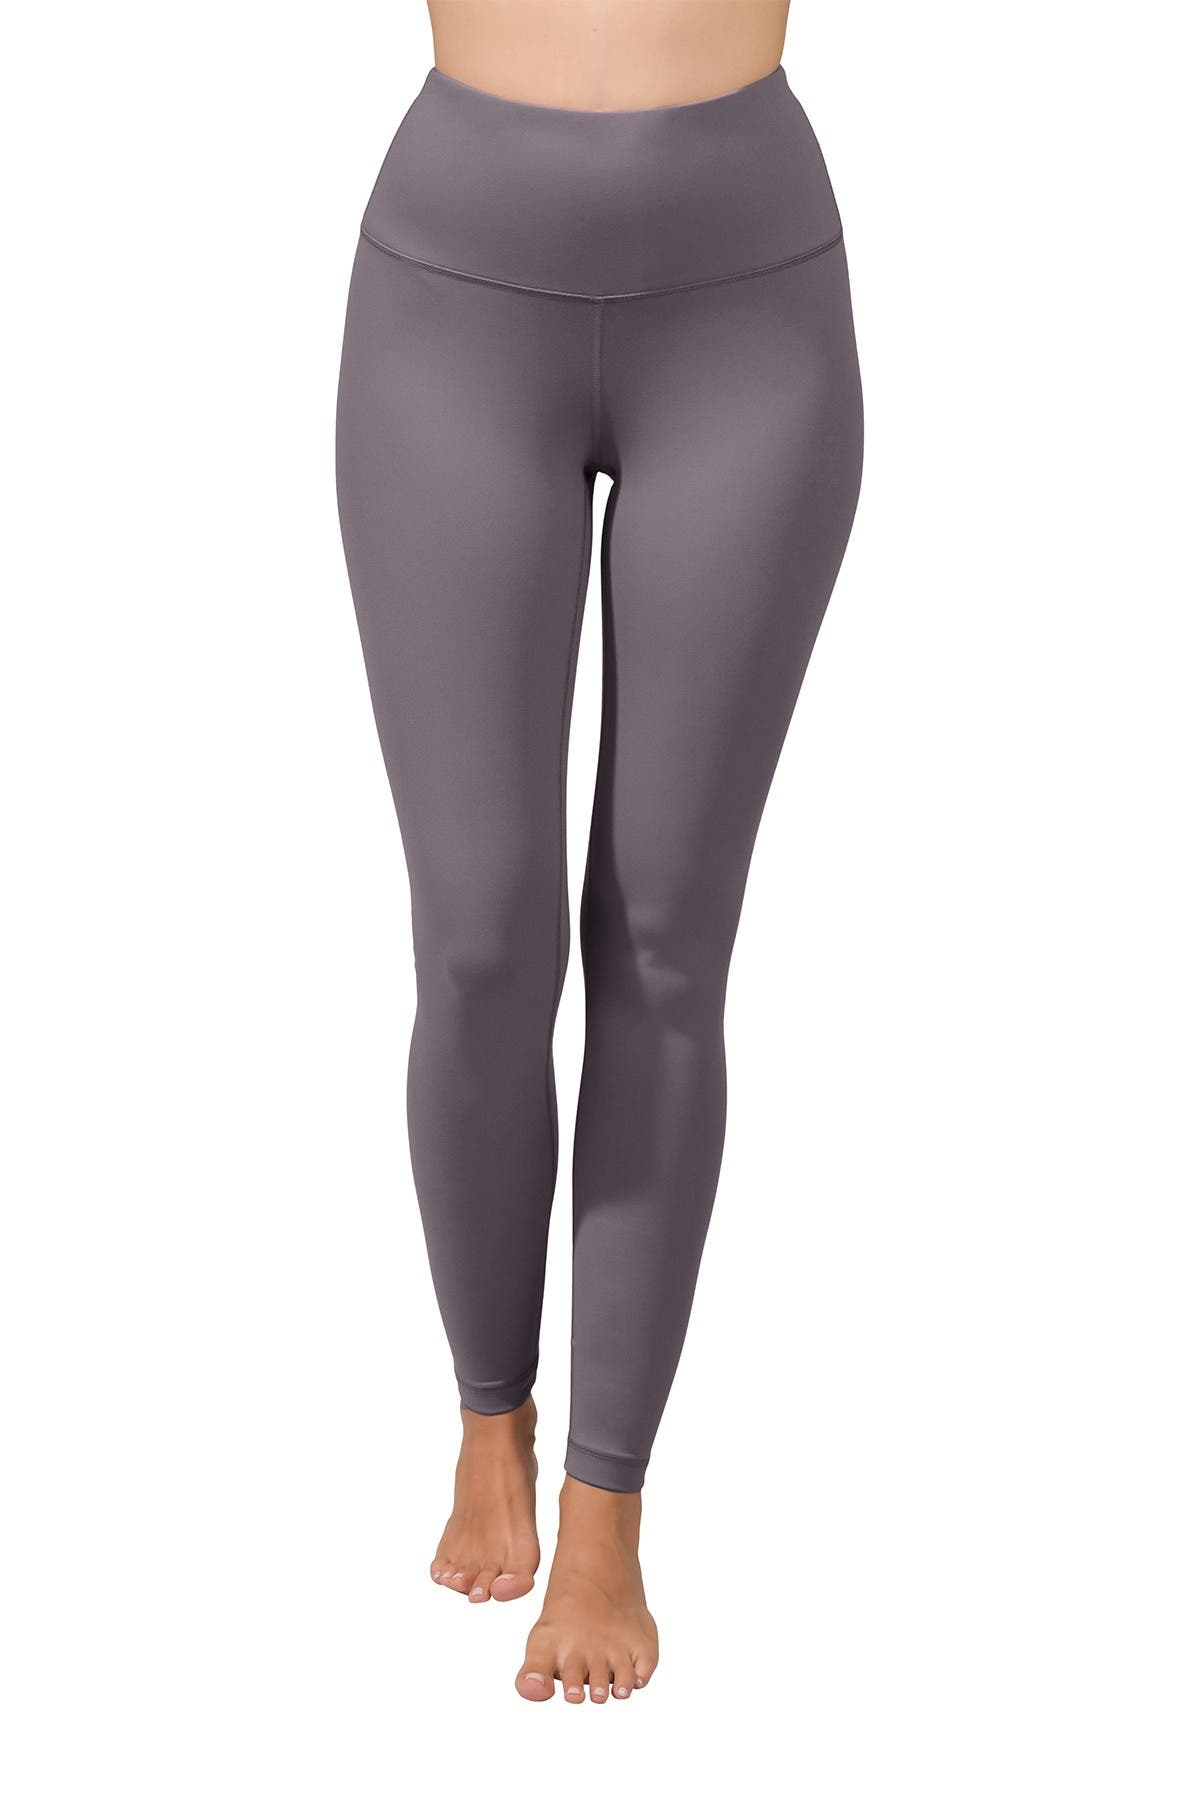 Image of 90 Degree By Reflex Powerflex Solid Active Leggings